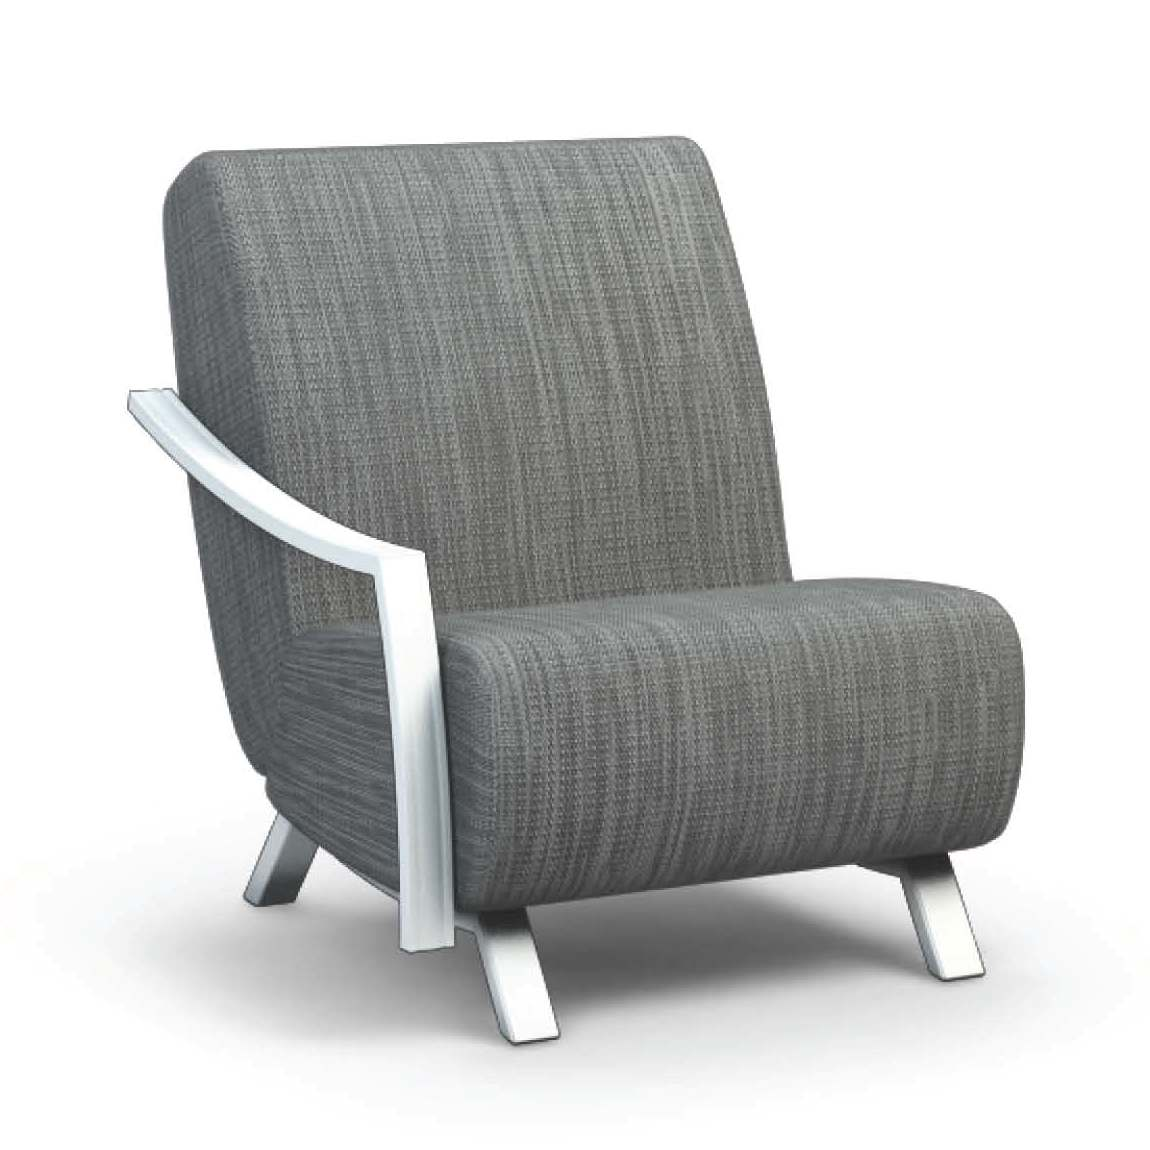 Airo2 (Aluminum) Right Arm Chair - taylor ray decor